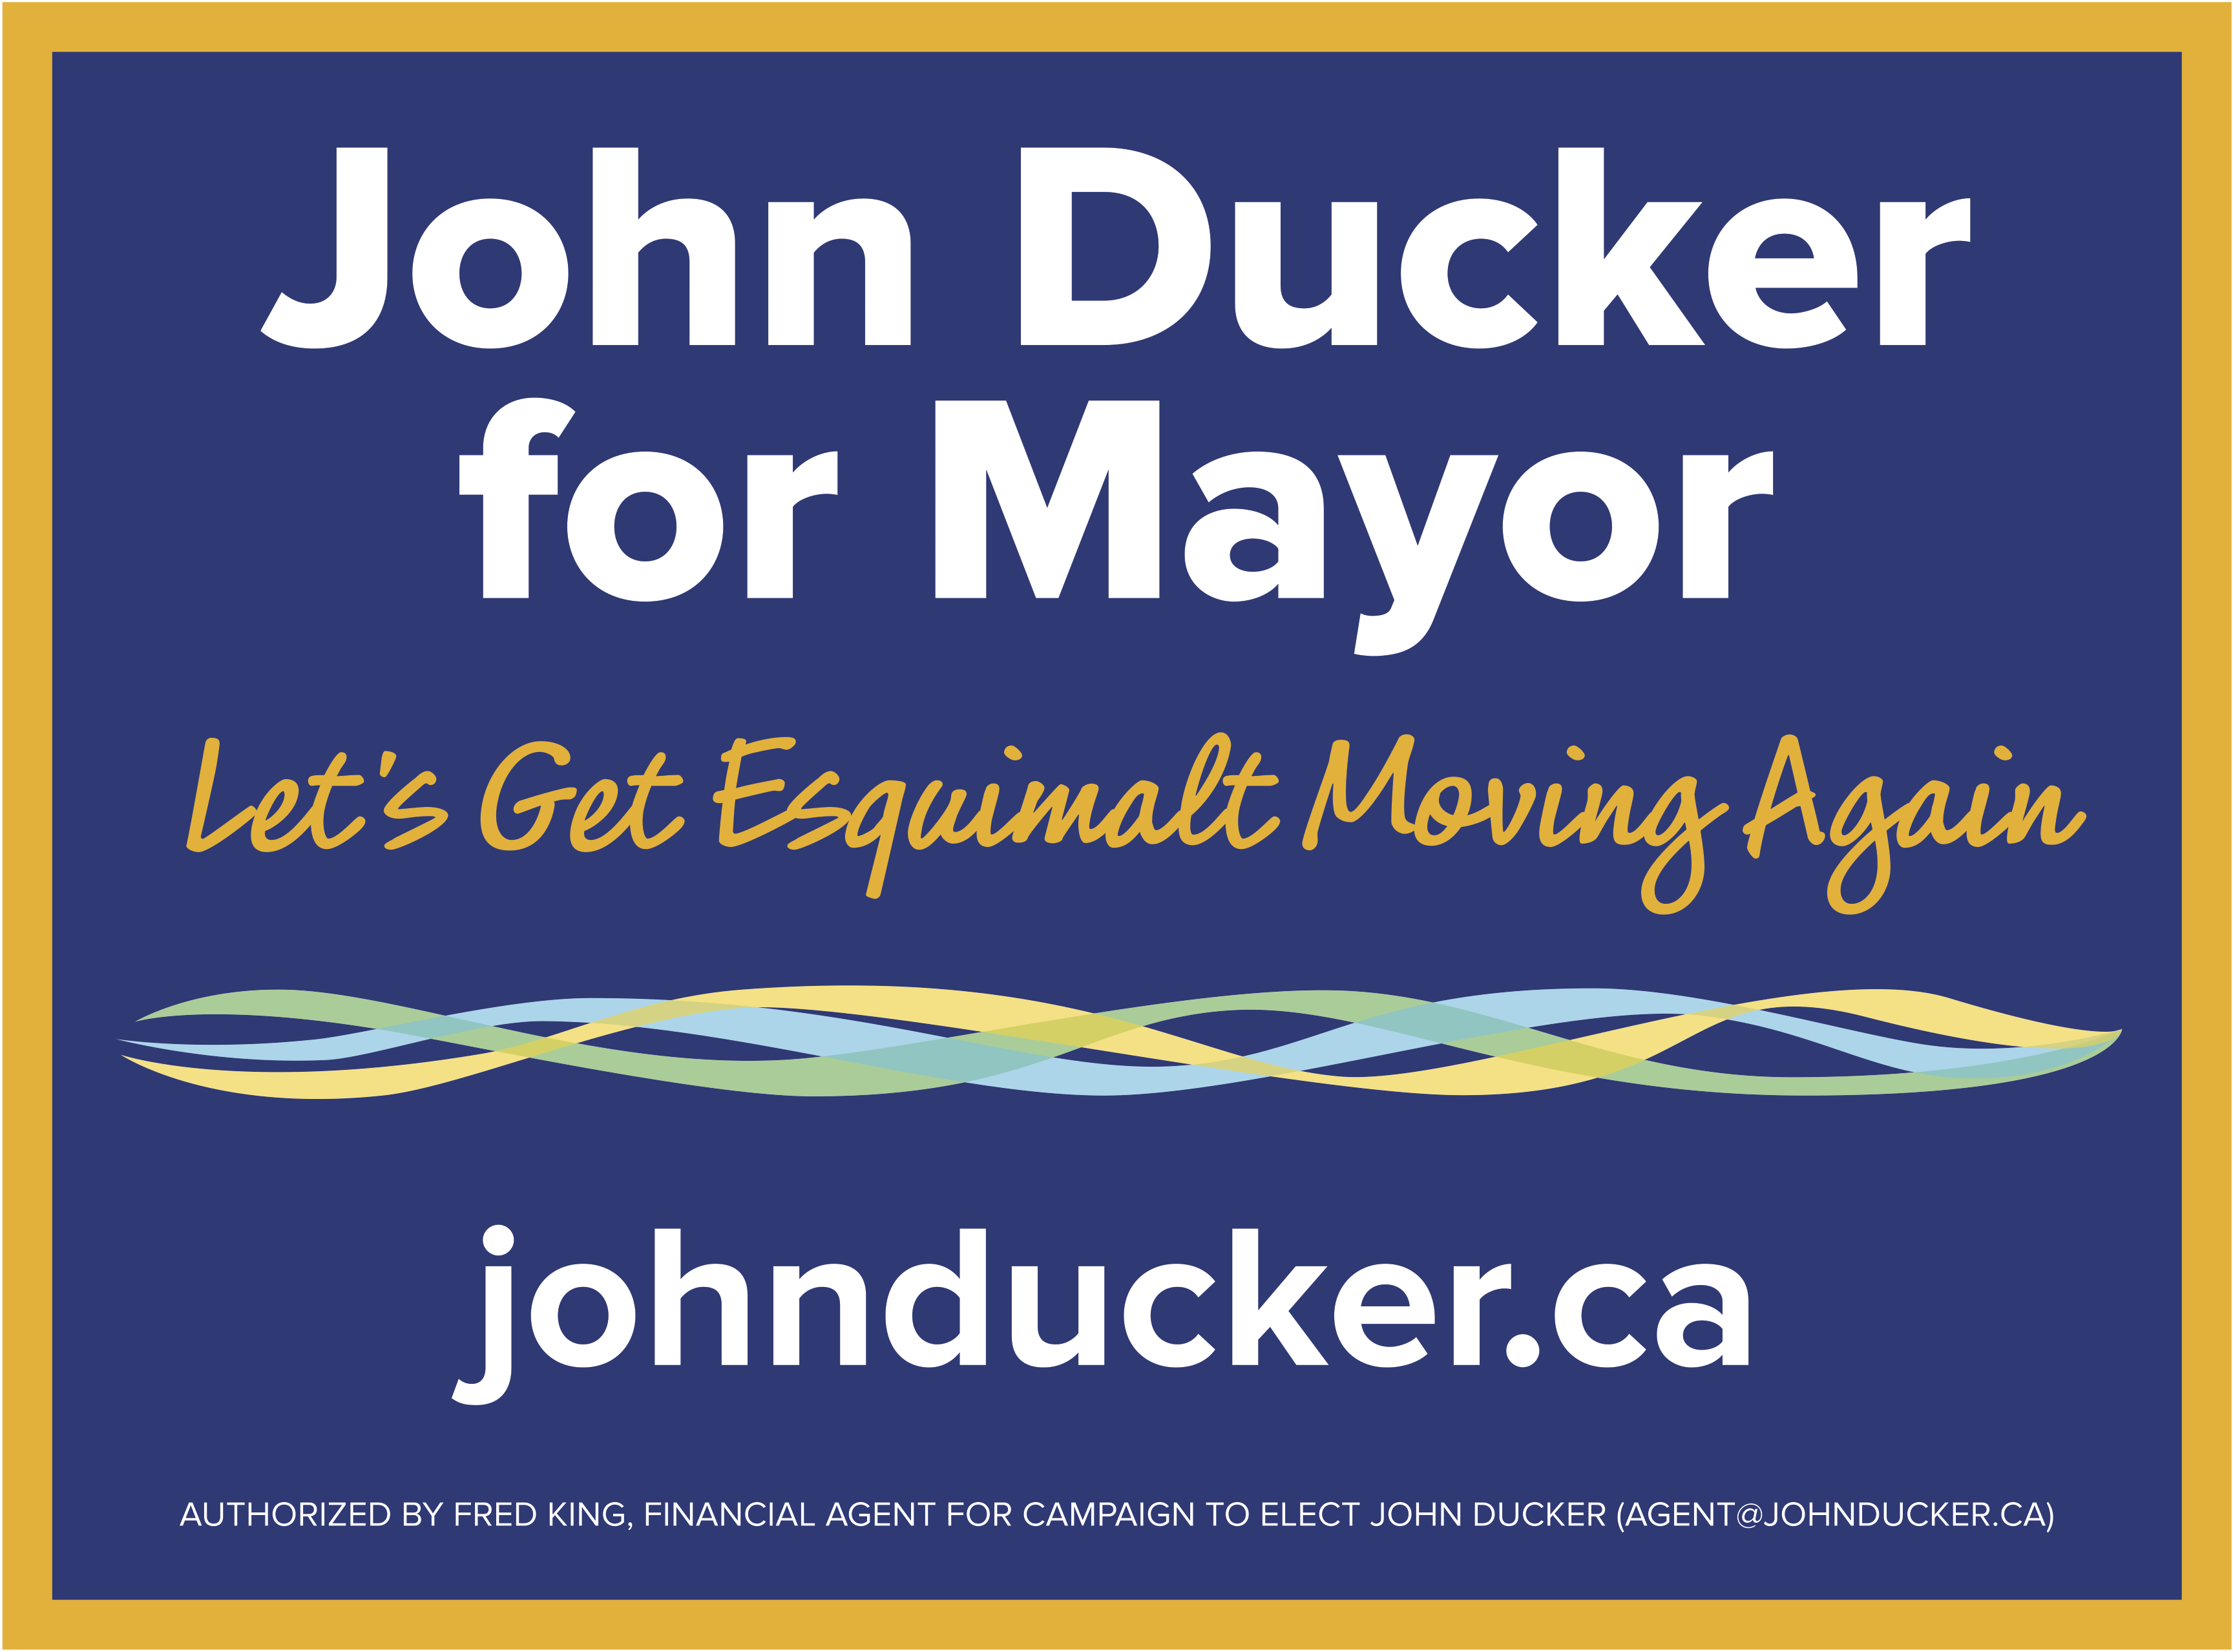 JohnDucker-sign1-1409-print1a.jpg